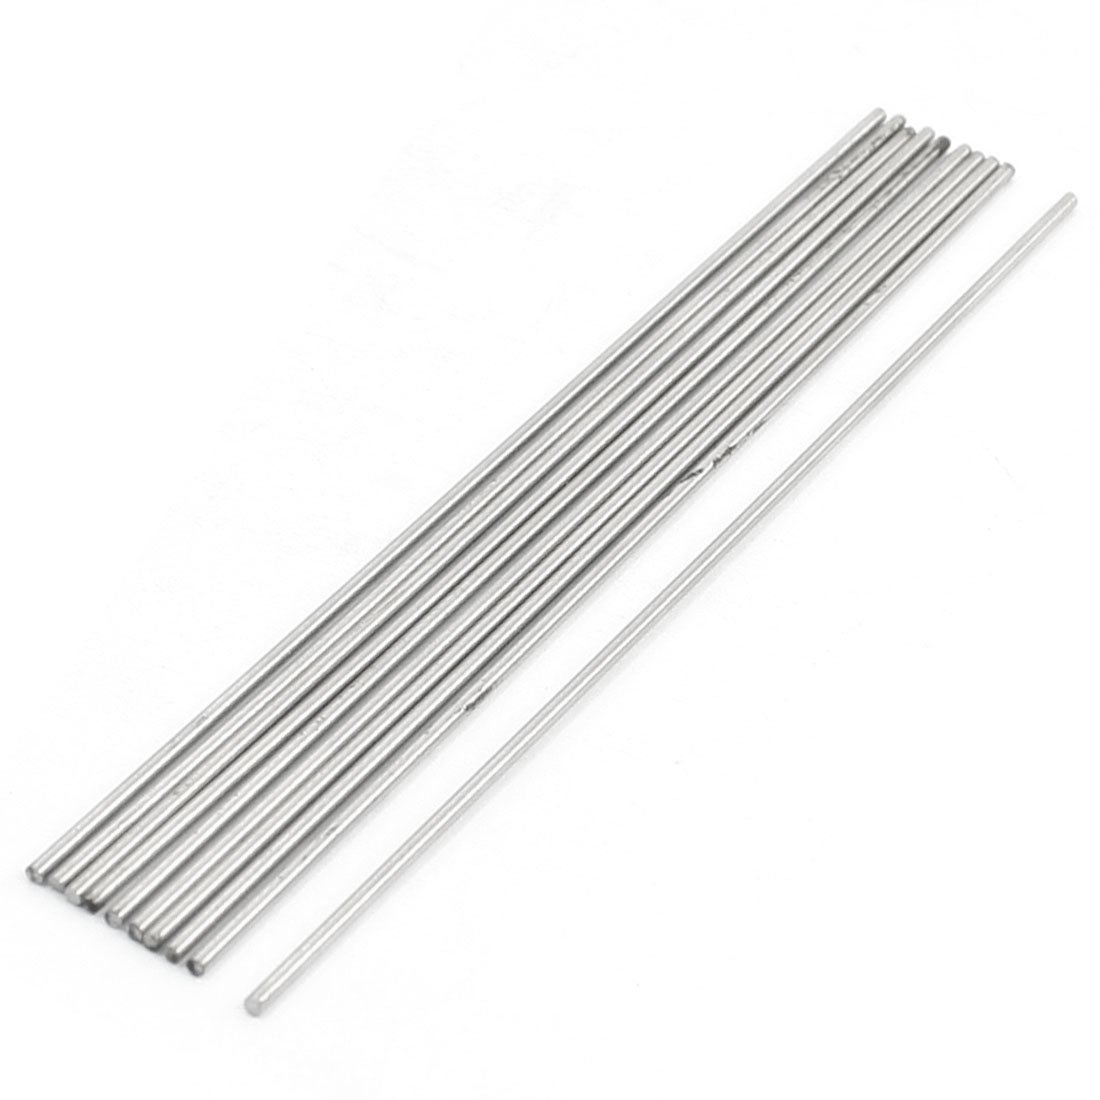 10 Pcs HSS High Speed Steel Round Turning Lathe Bars 1.2mm x 100mm Sourcingmap a14021900ux0134